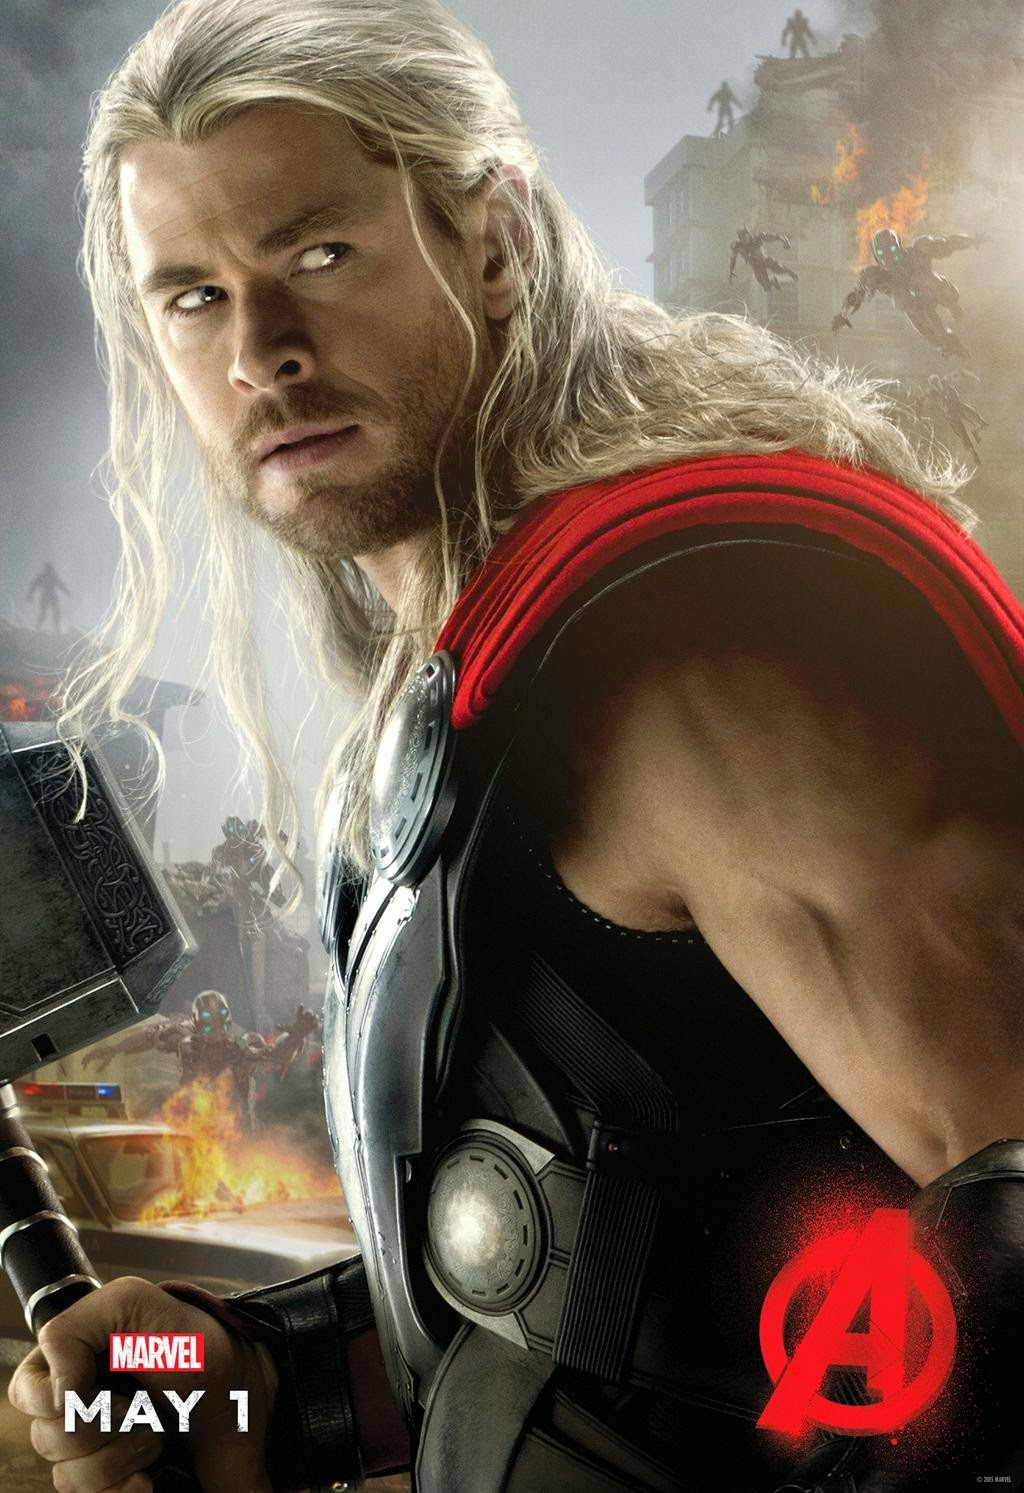 Marvel's Avengers Age of Ultron Character Movie Poster Set - Chris Hemsworth as Thor